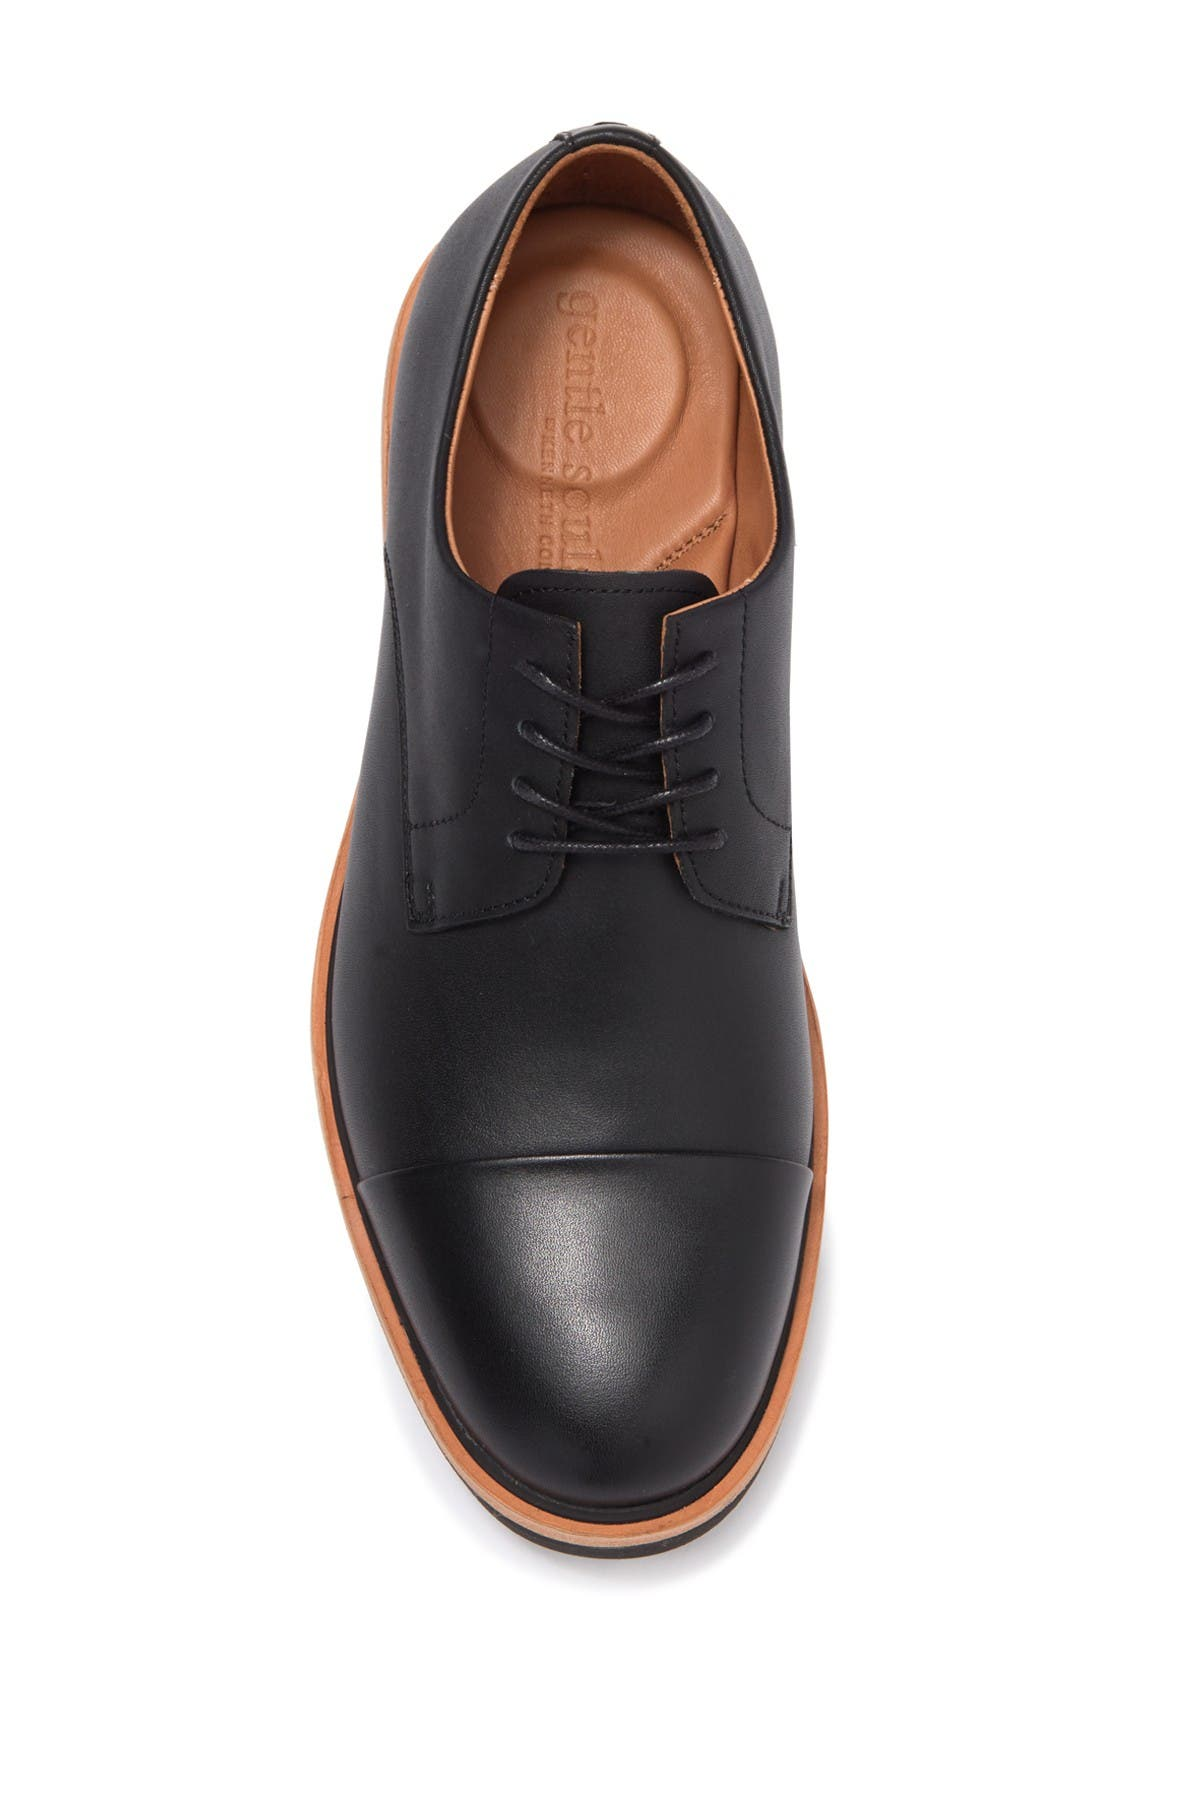 Image of Gentle Souls by Kenneth Cole Greyson Buck Leather Oxford